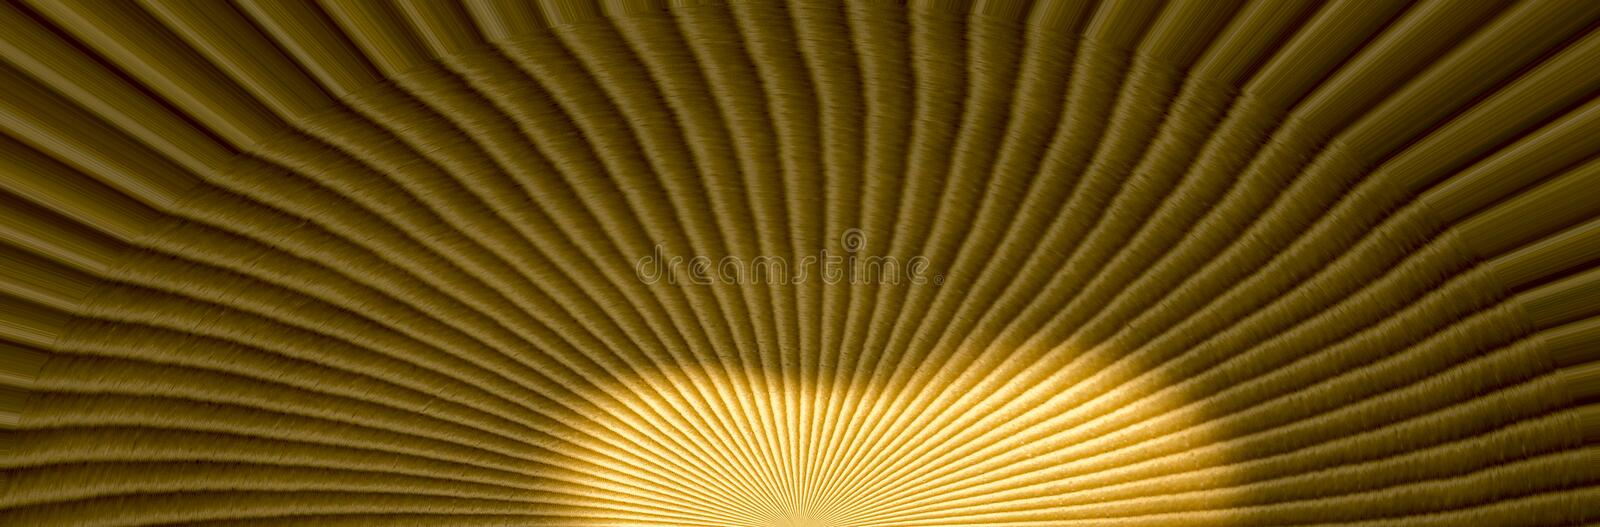 Tranquil background composed of the light source. Background composed of the light source going from inside to outside royalty free stock photography